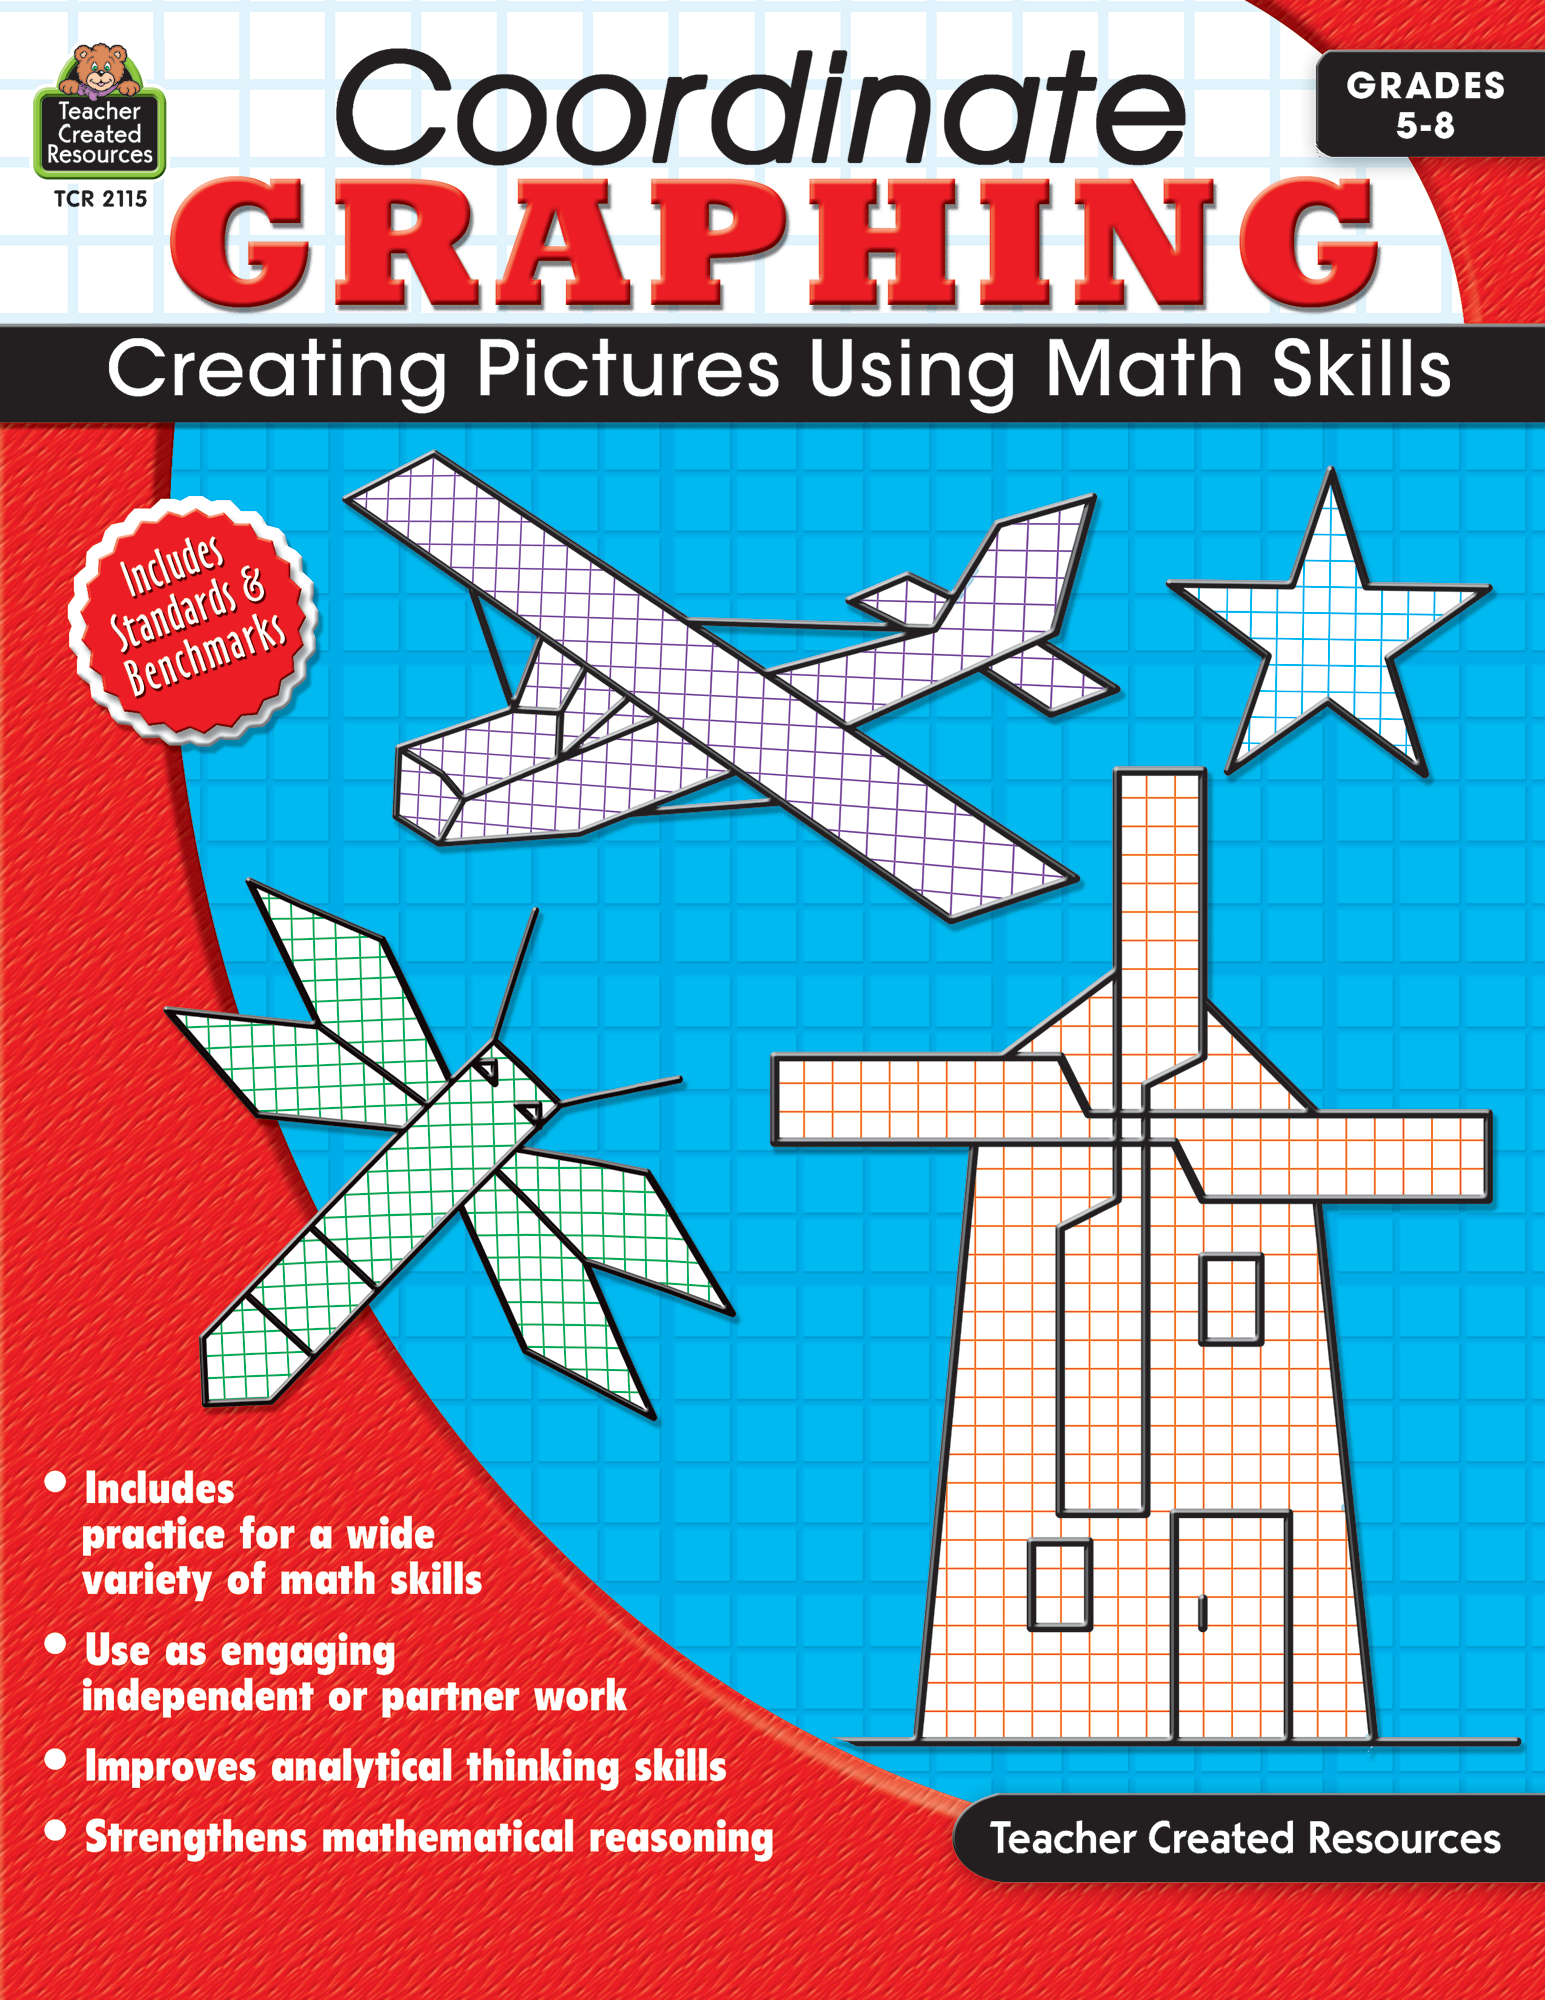 Coordinate Graphing Grade 5-8 - TCR2115 | Teacher Created Resources